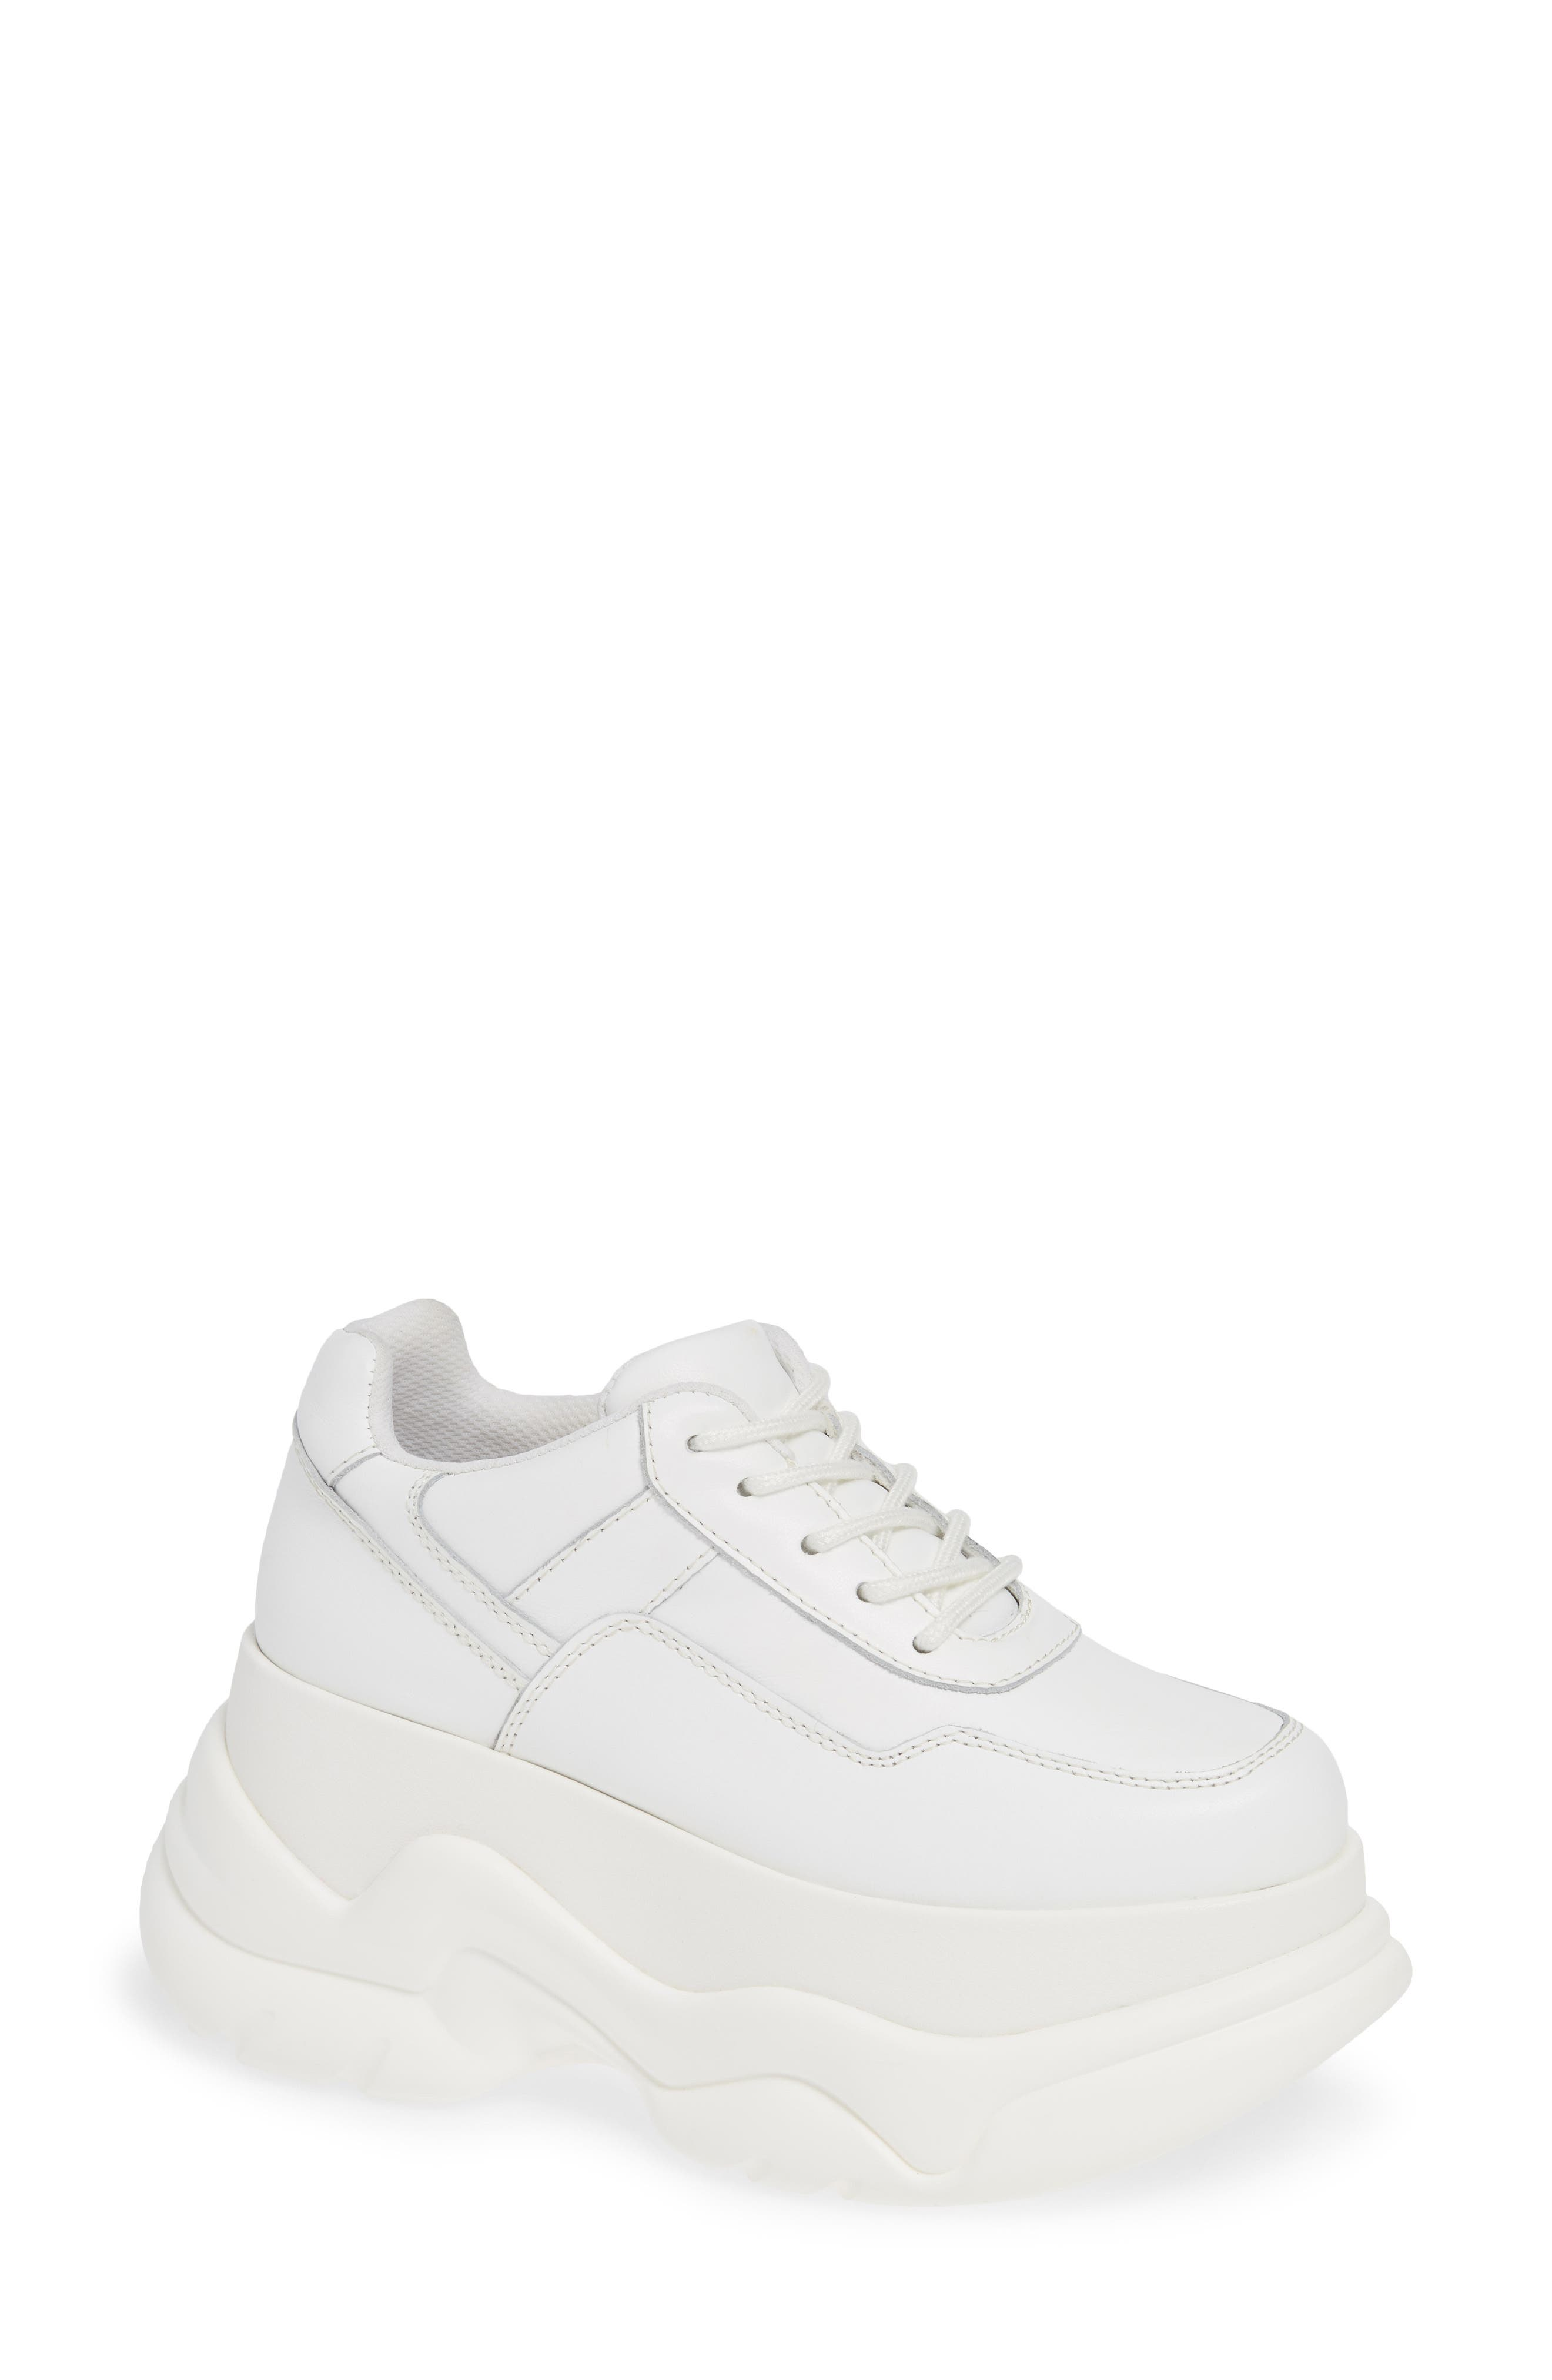 JEFFREY CAMPBELL Most Def Wedge Sneaker, Main, color, WHITE/ WHITE LEATHER